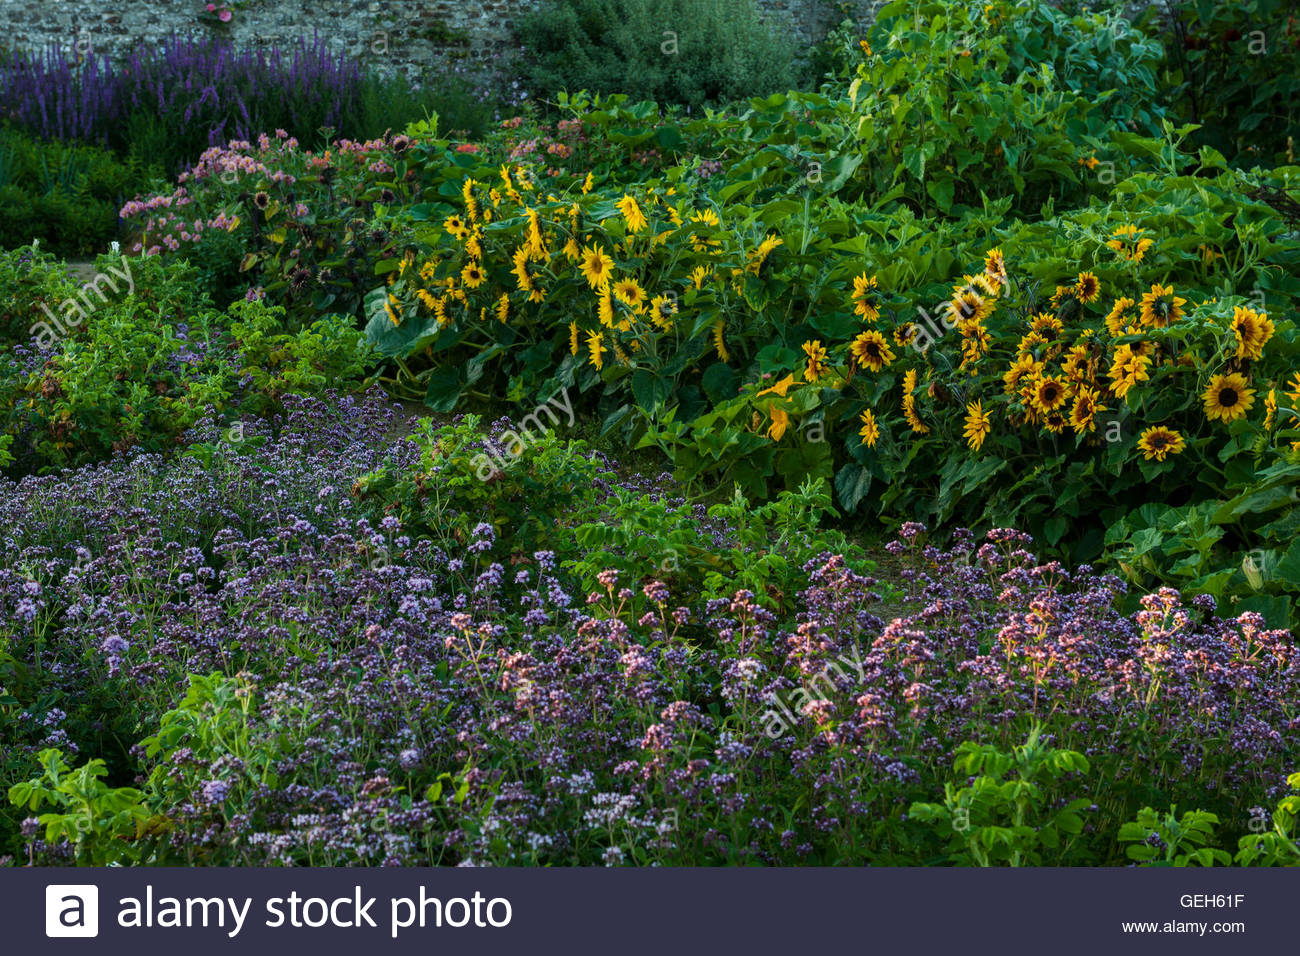 cut flower borders - Stock Image